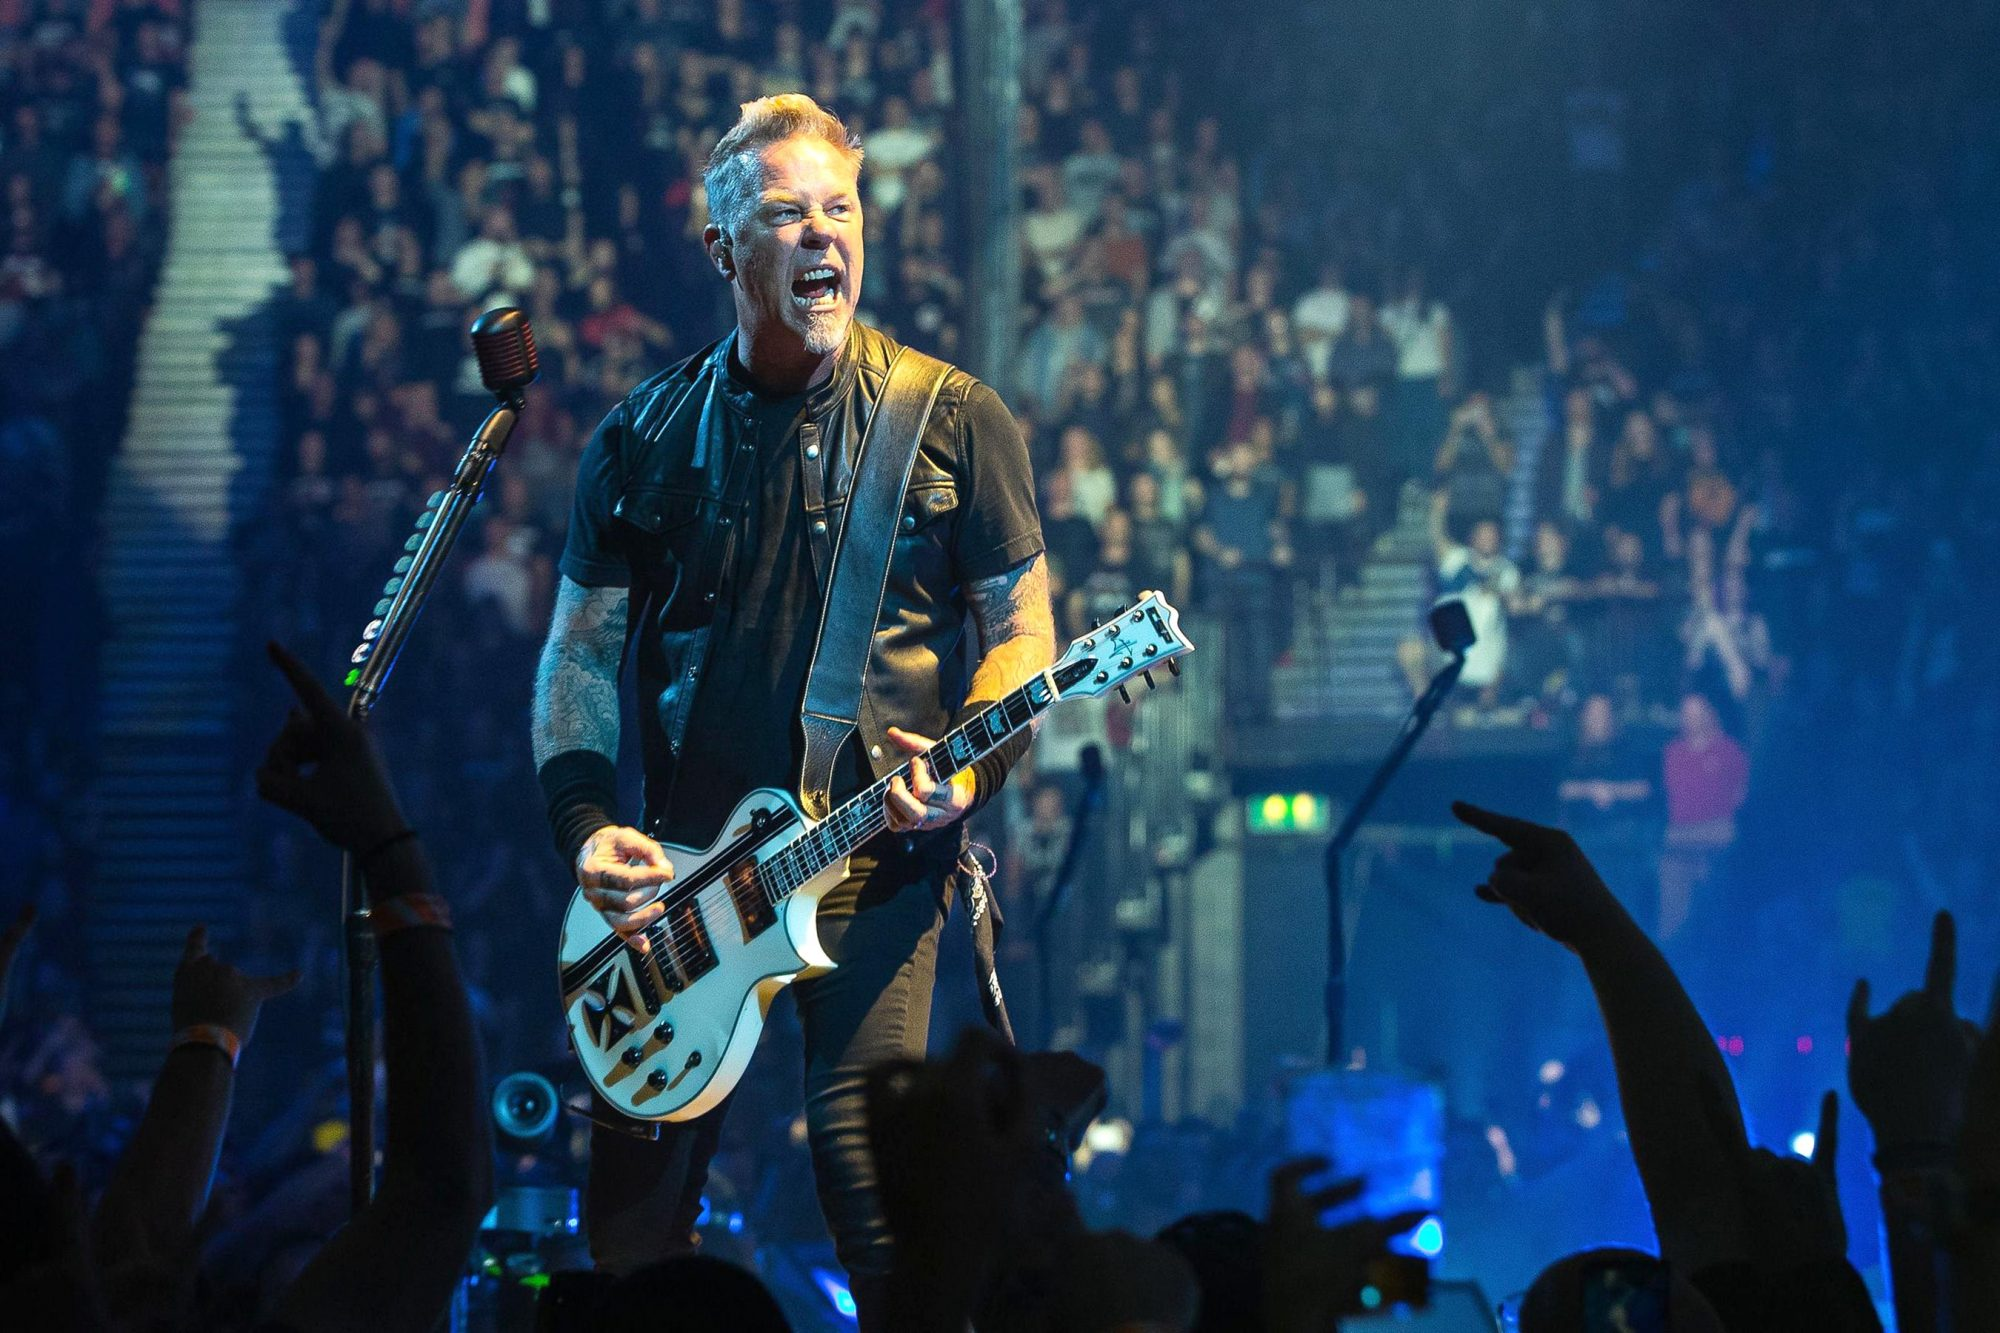 Metallica in concert at the Manchester Arena, UK - 28 Oct 2017